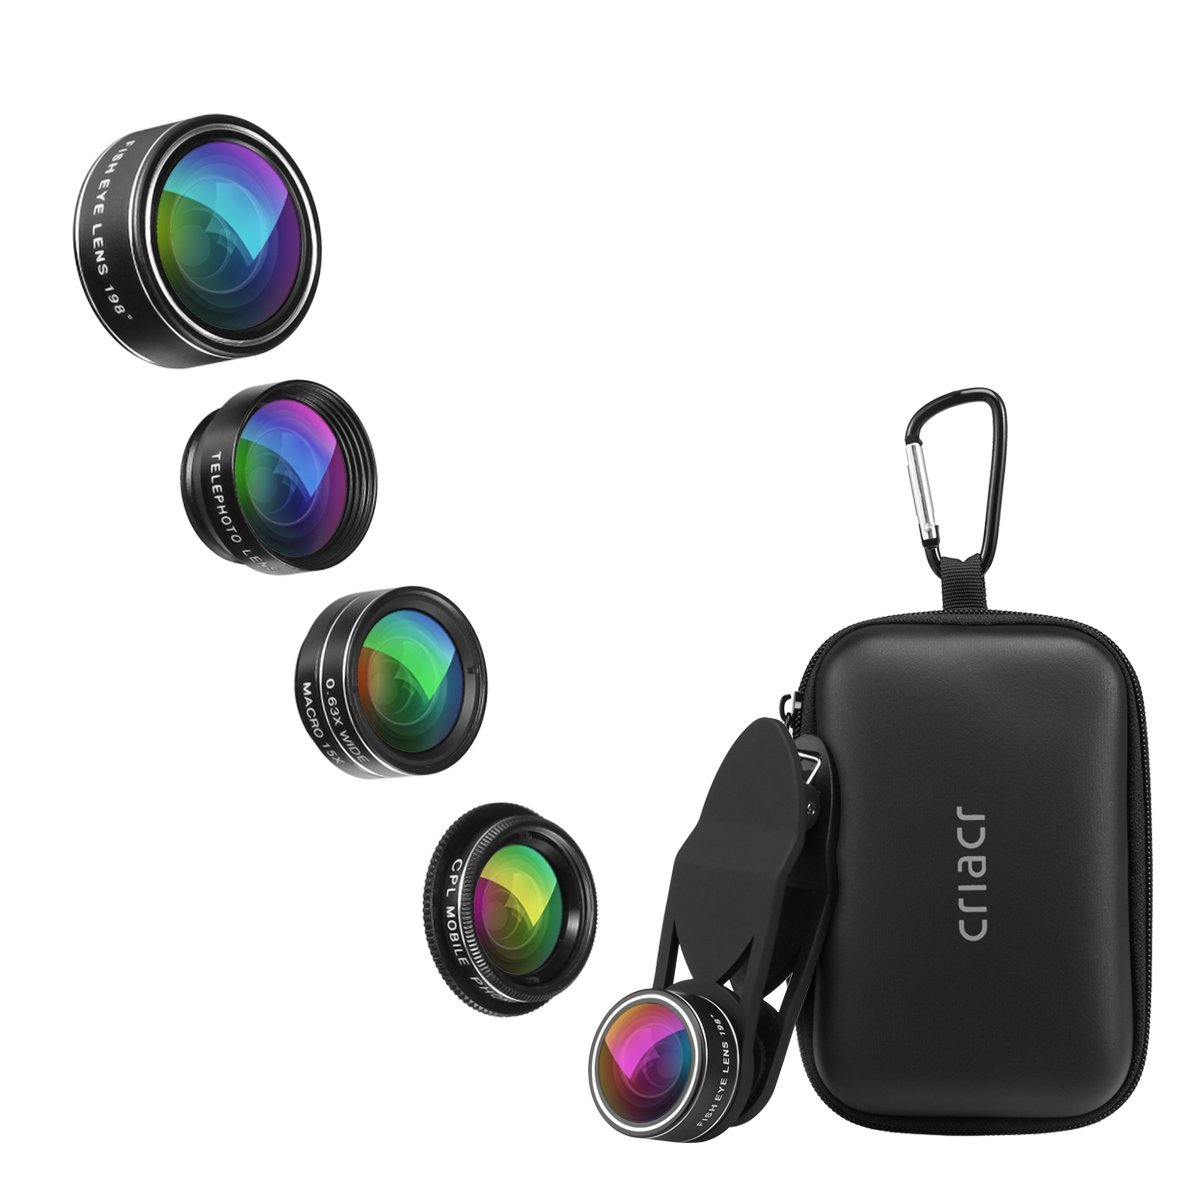 Criacr 5 in 1 Phone Camera Lens Kit, 2X Zoom Telephoto Lens + 198° Fisheye Lens + 0.63X Angle Lens & 15X Macro Lens (Attached Together) + Circular Polarized Lens for iPhone, Samsung, Smartphones AMIR